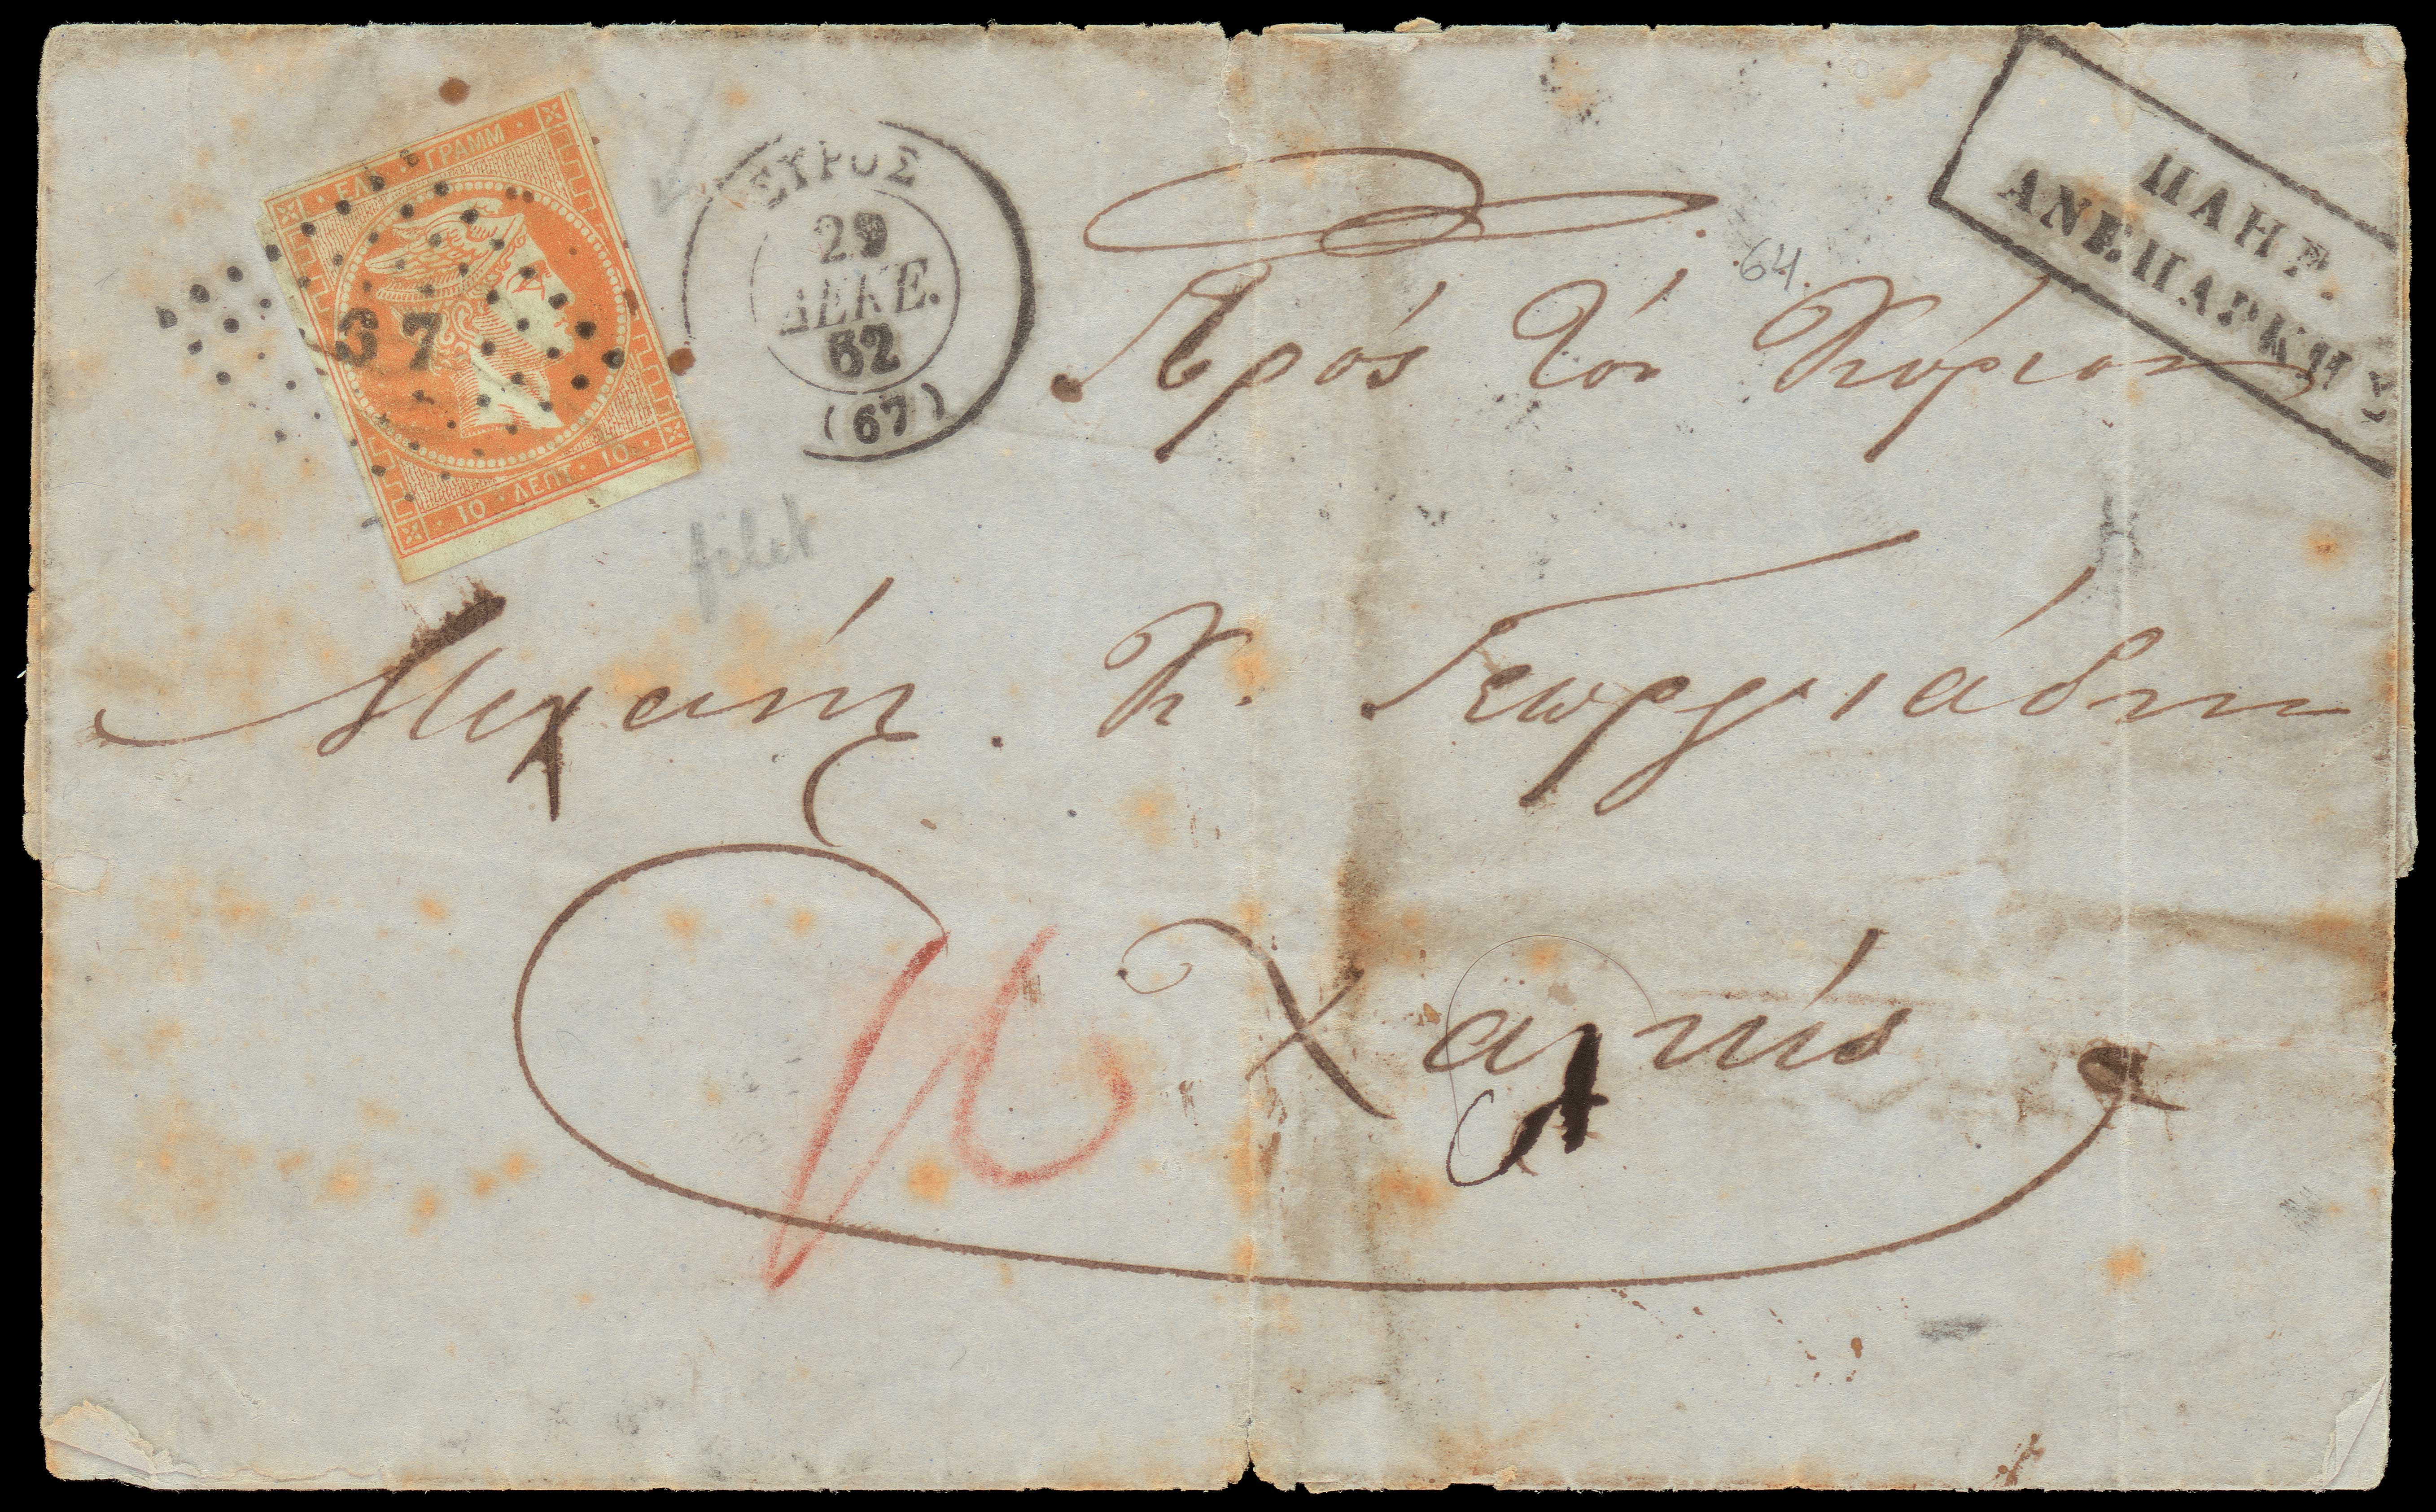 Lot 59 - -  LARGE HERMES HEAD 1861/1862 athens provisional printings -  A. Karamitsos Public & Live Internet Auction 666 Large Hermes Heads Exceptional Stamps from Great Collections